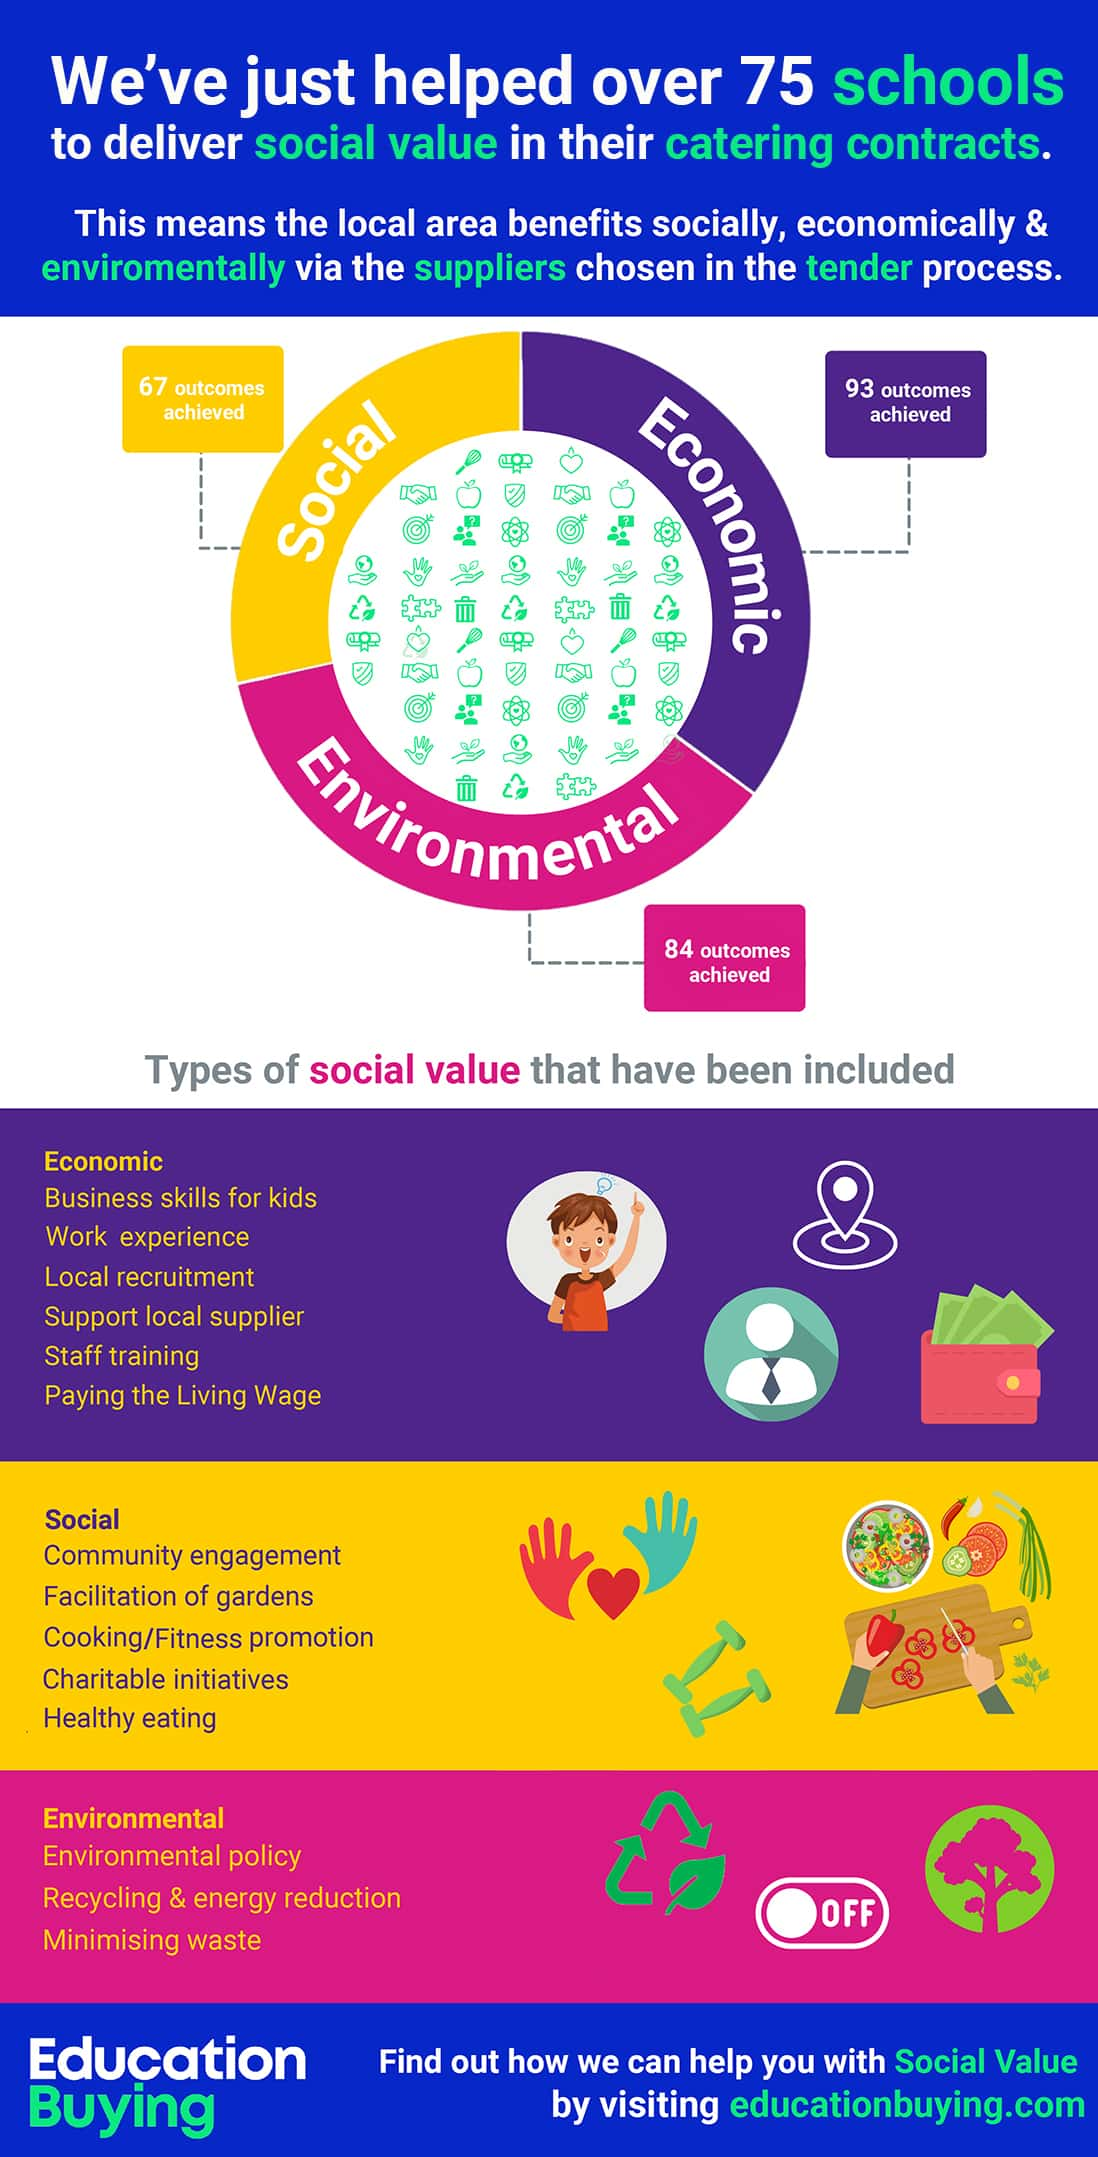 Education Buying - The importance of Social Value in your school's tendering